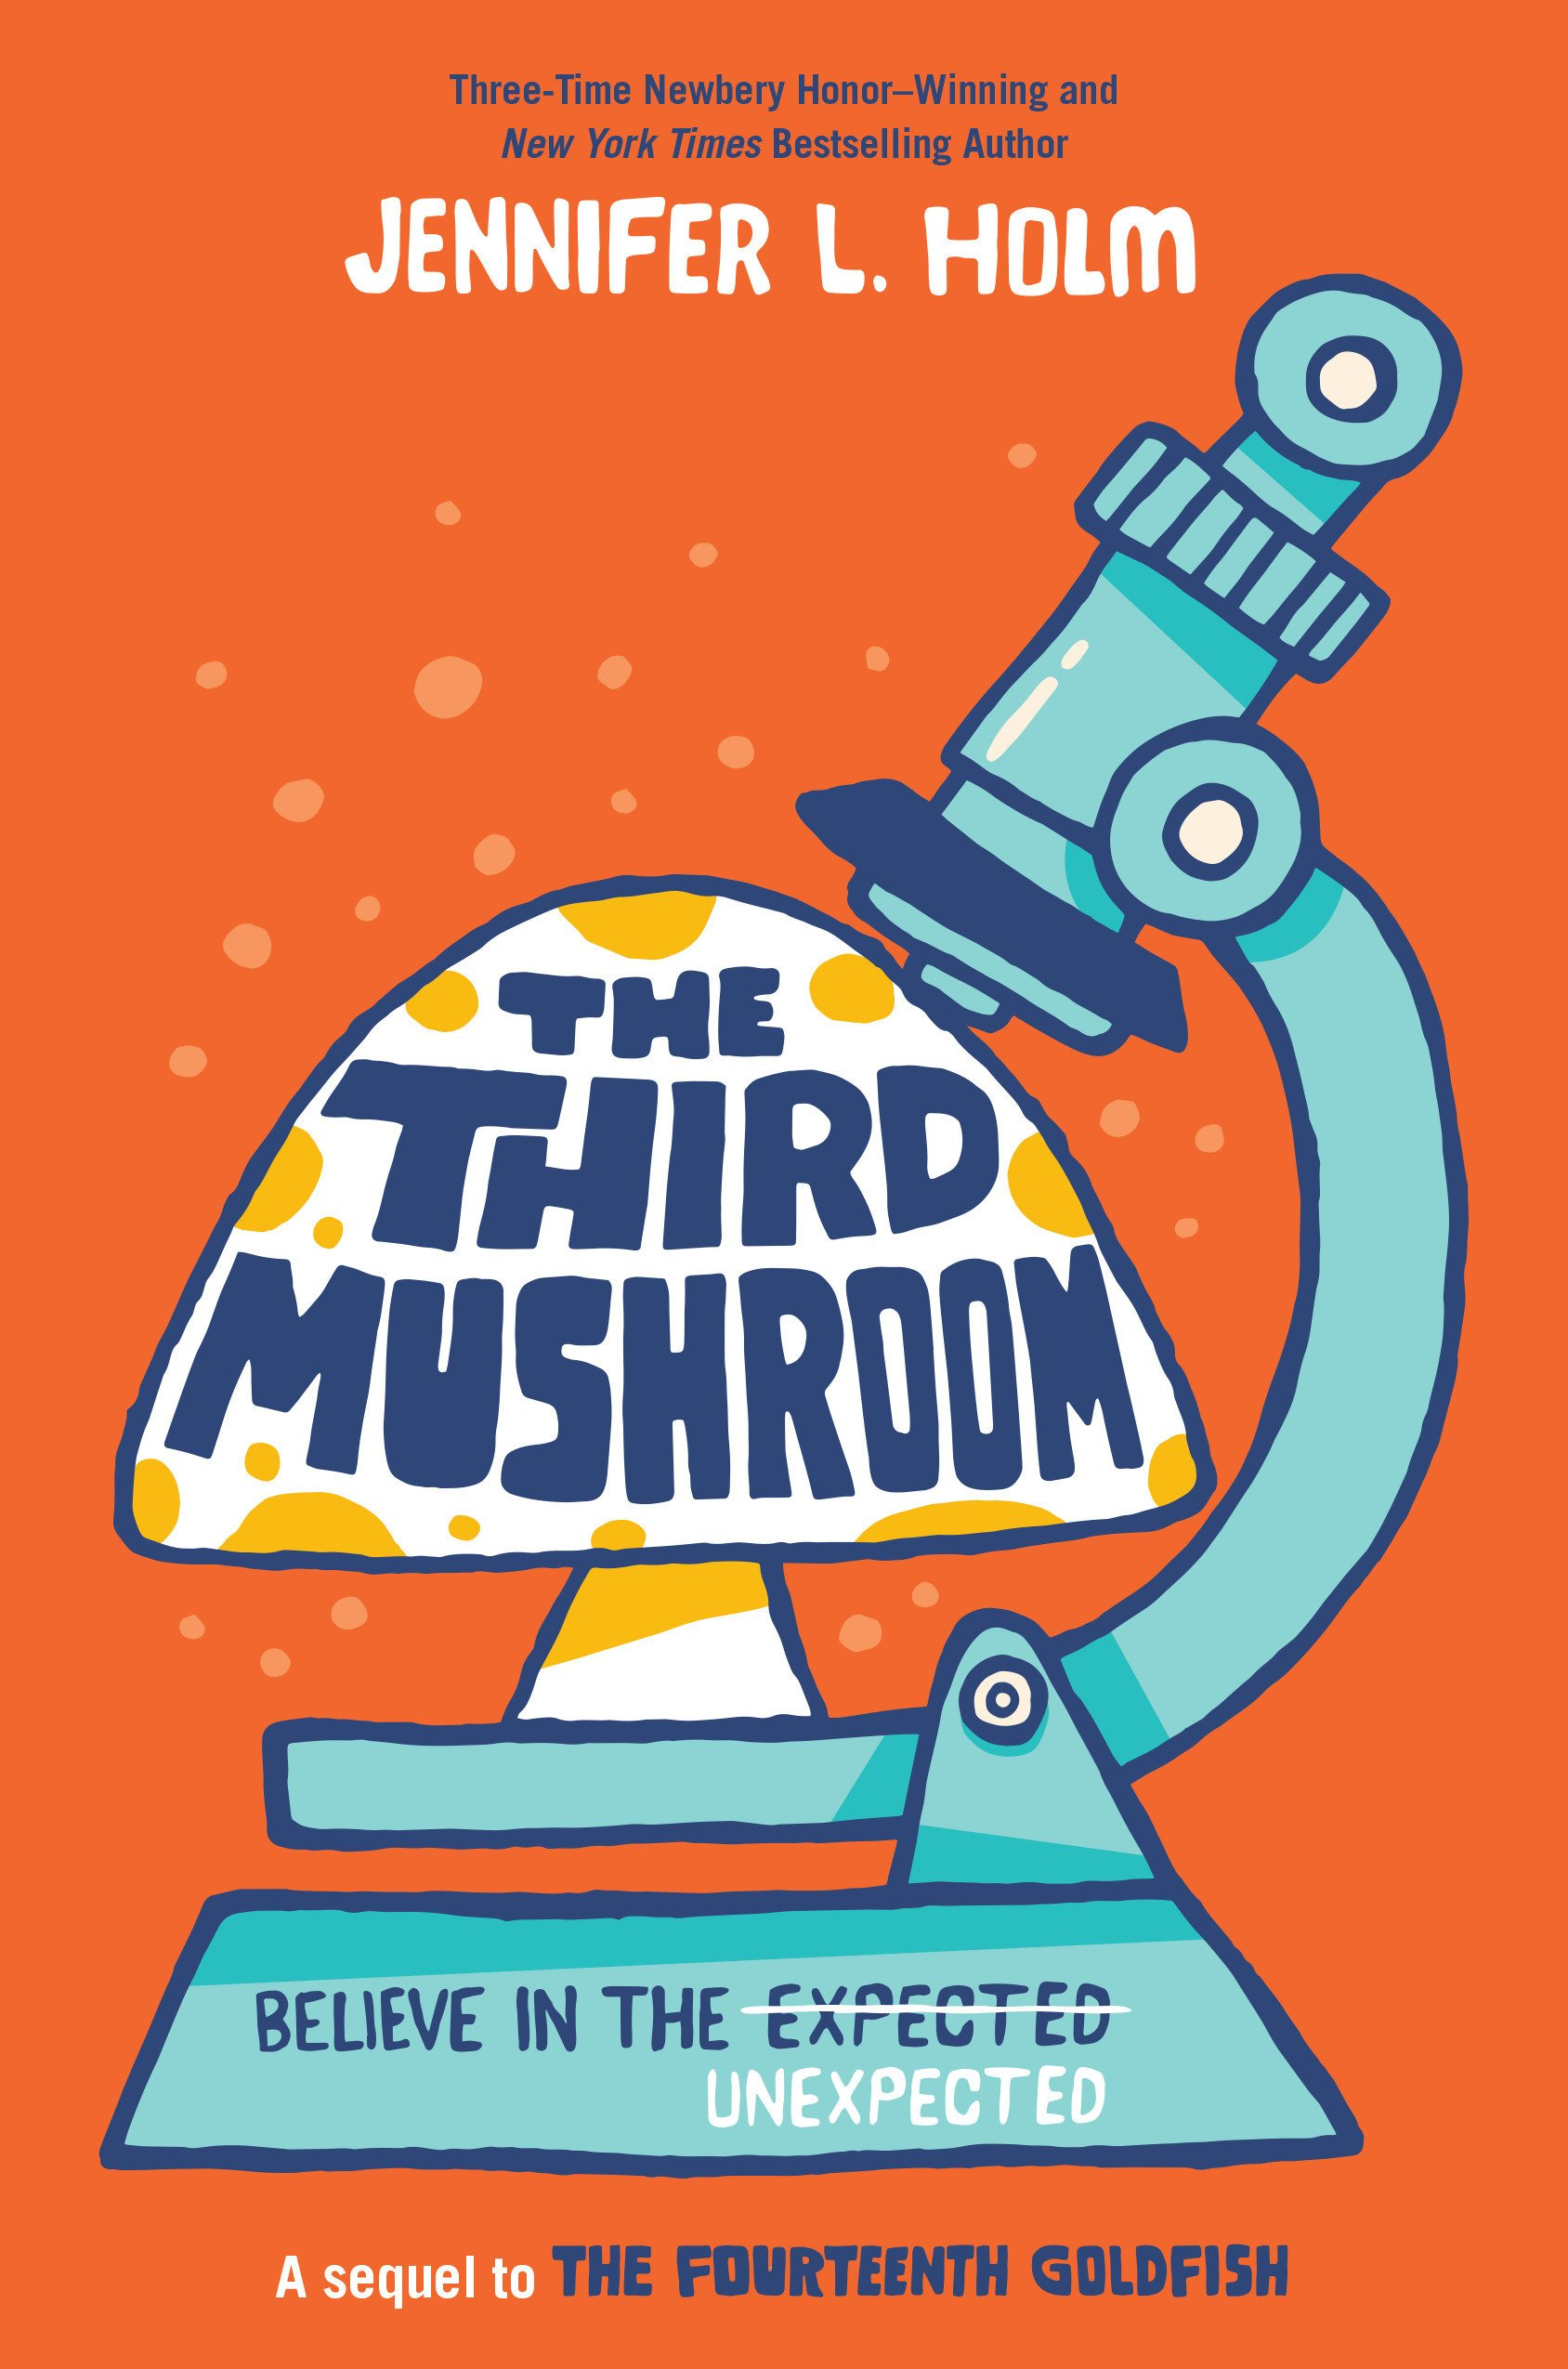 Image result for third mushroom holm amazon